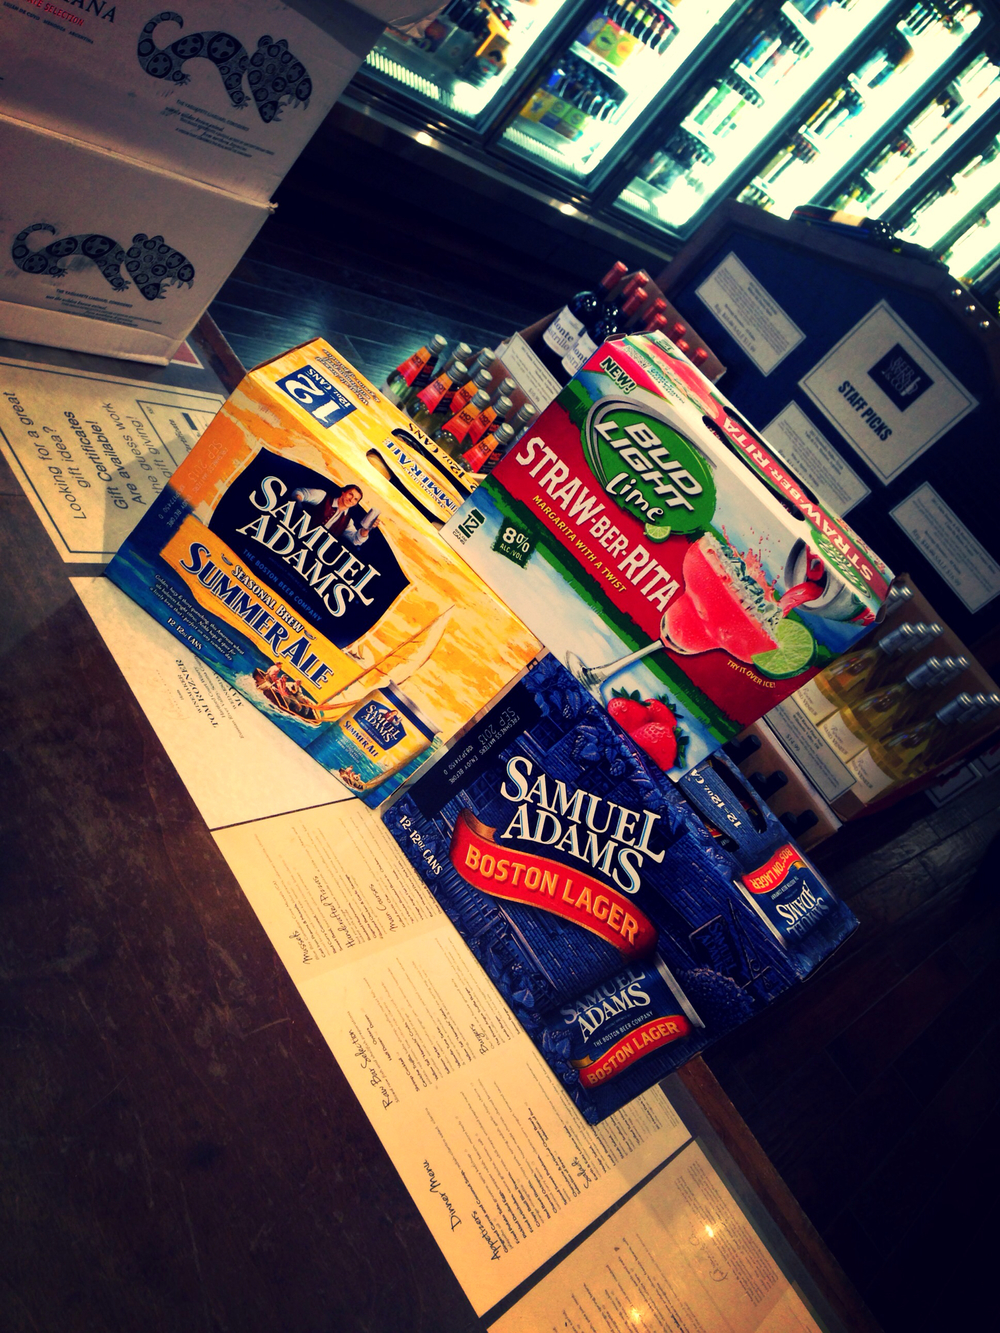 Sam Adams Boston Lager & Summer Ale now in 12 pack cans, Bud Light Strawberita